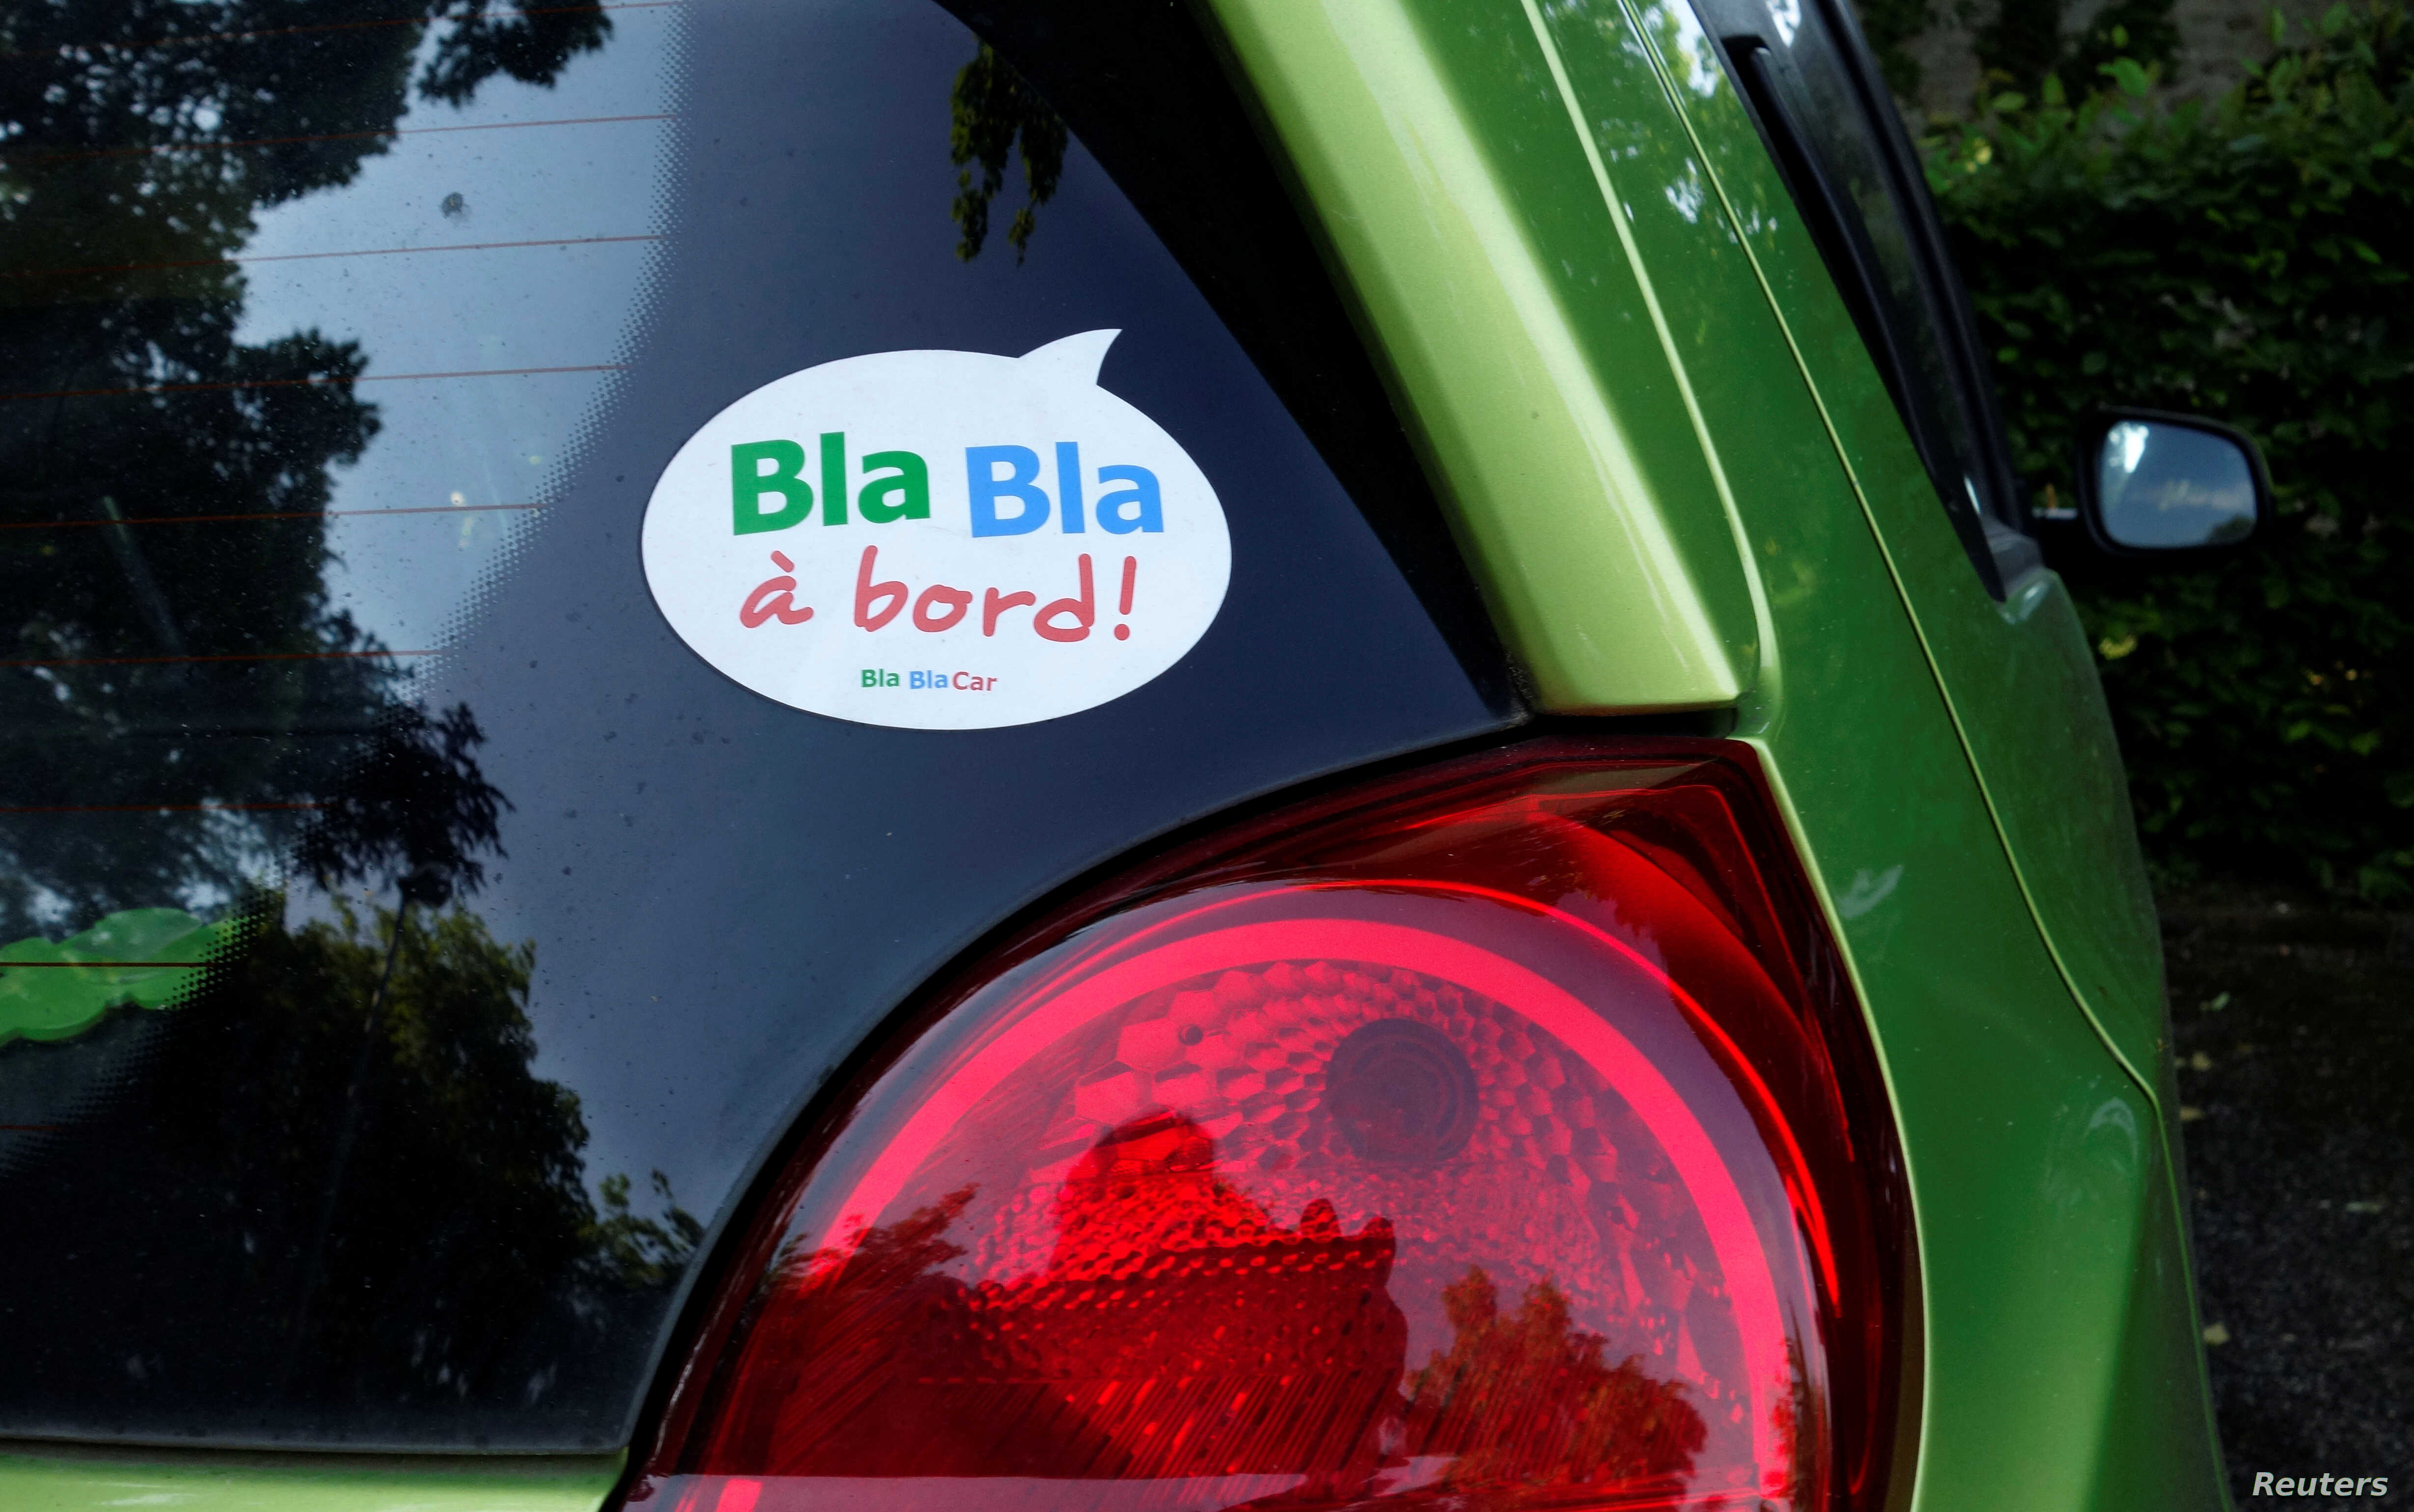 A sticker of French ride-sharing start-up BlaBlaCar is seen on a car May 27, 2017 at Le Coudray-Montceaux, near Paris, France.